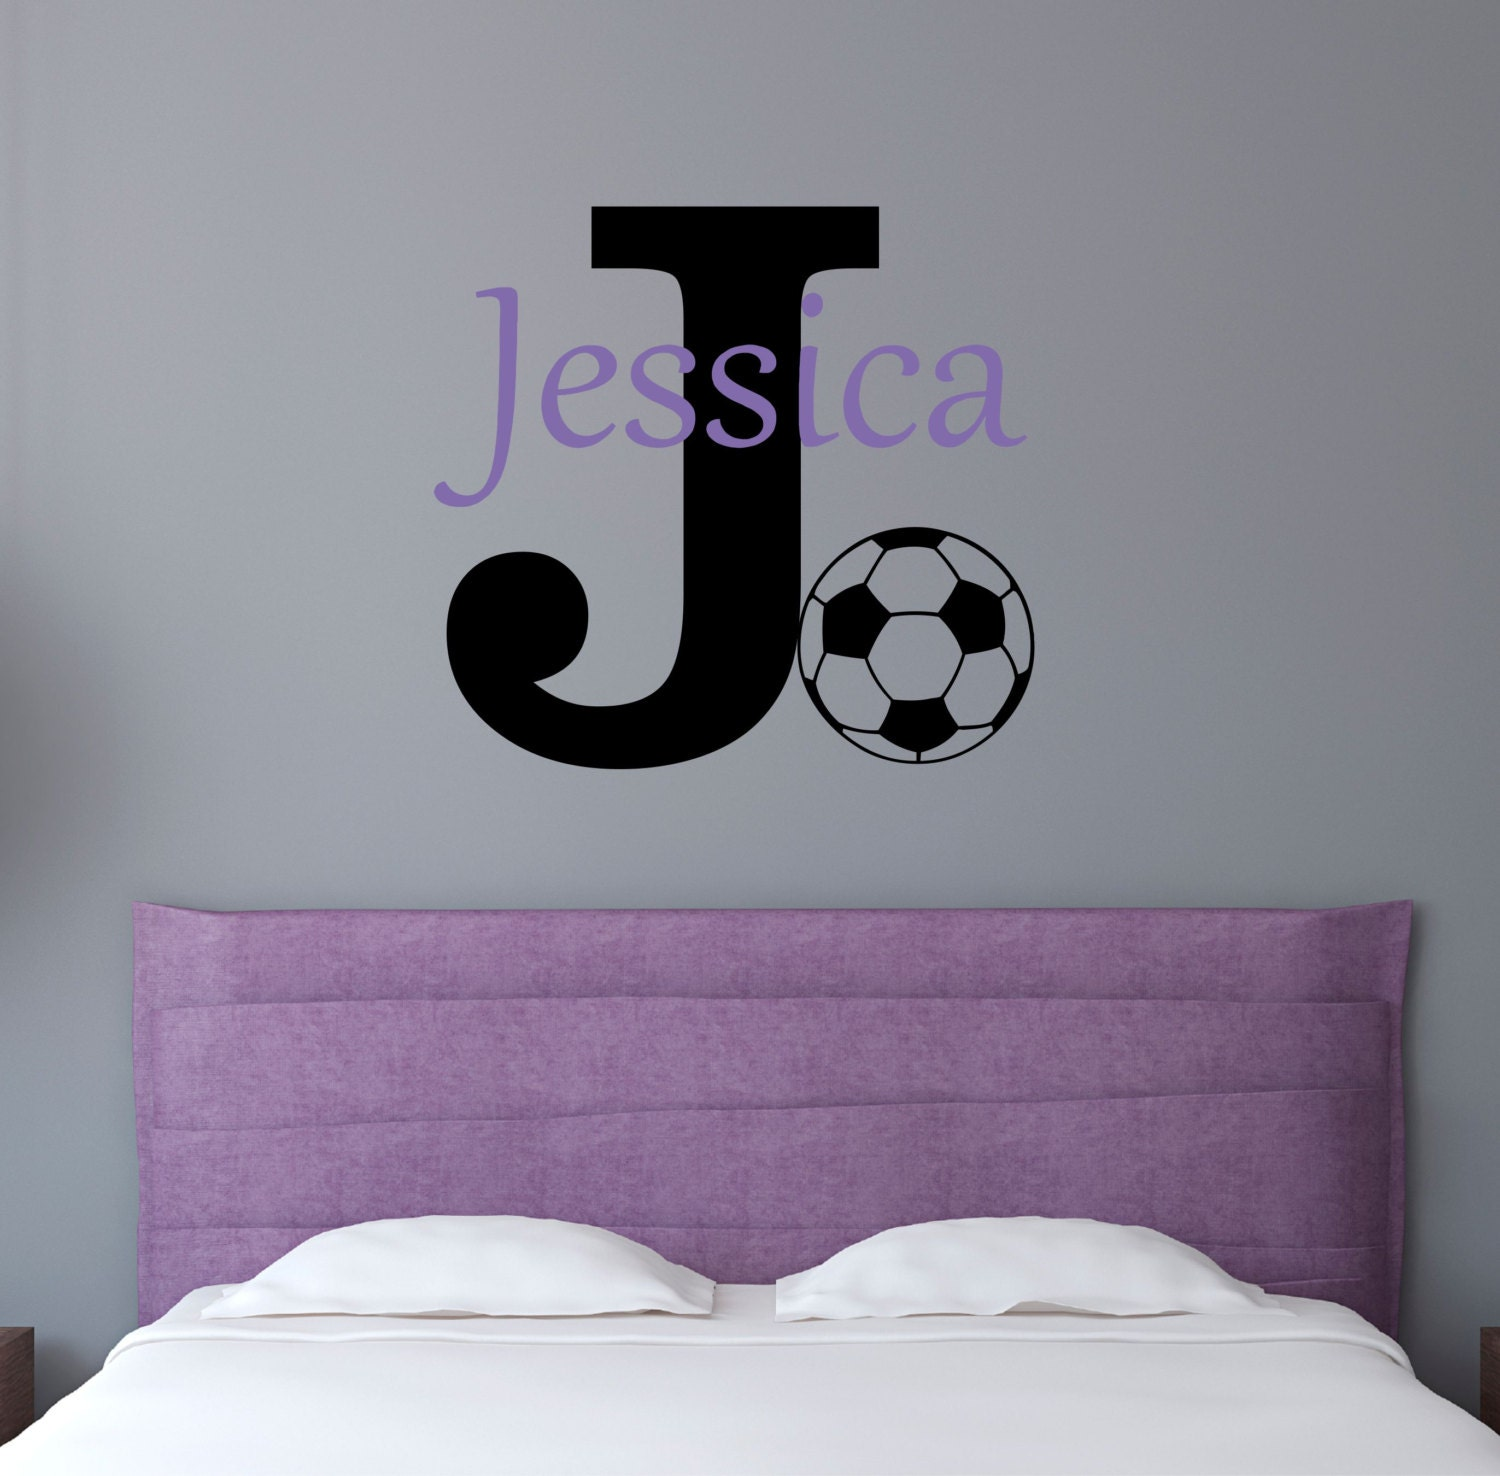 personalized name soccer wall decal sticker. Black Bedroom Furniture Sets. Home Design Ideas